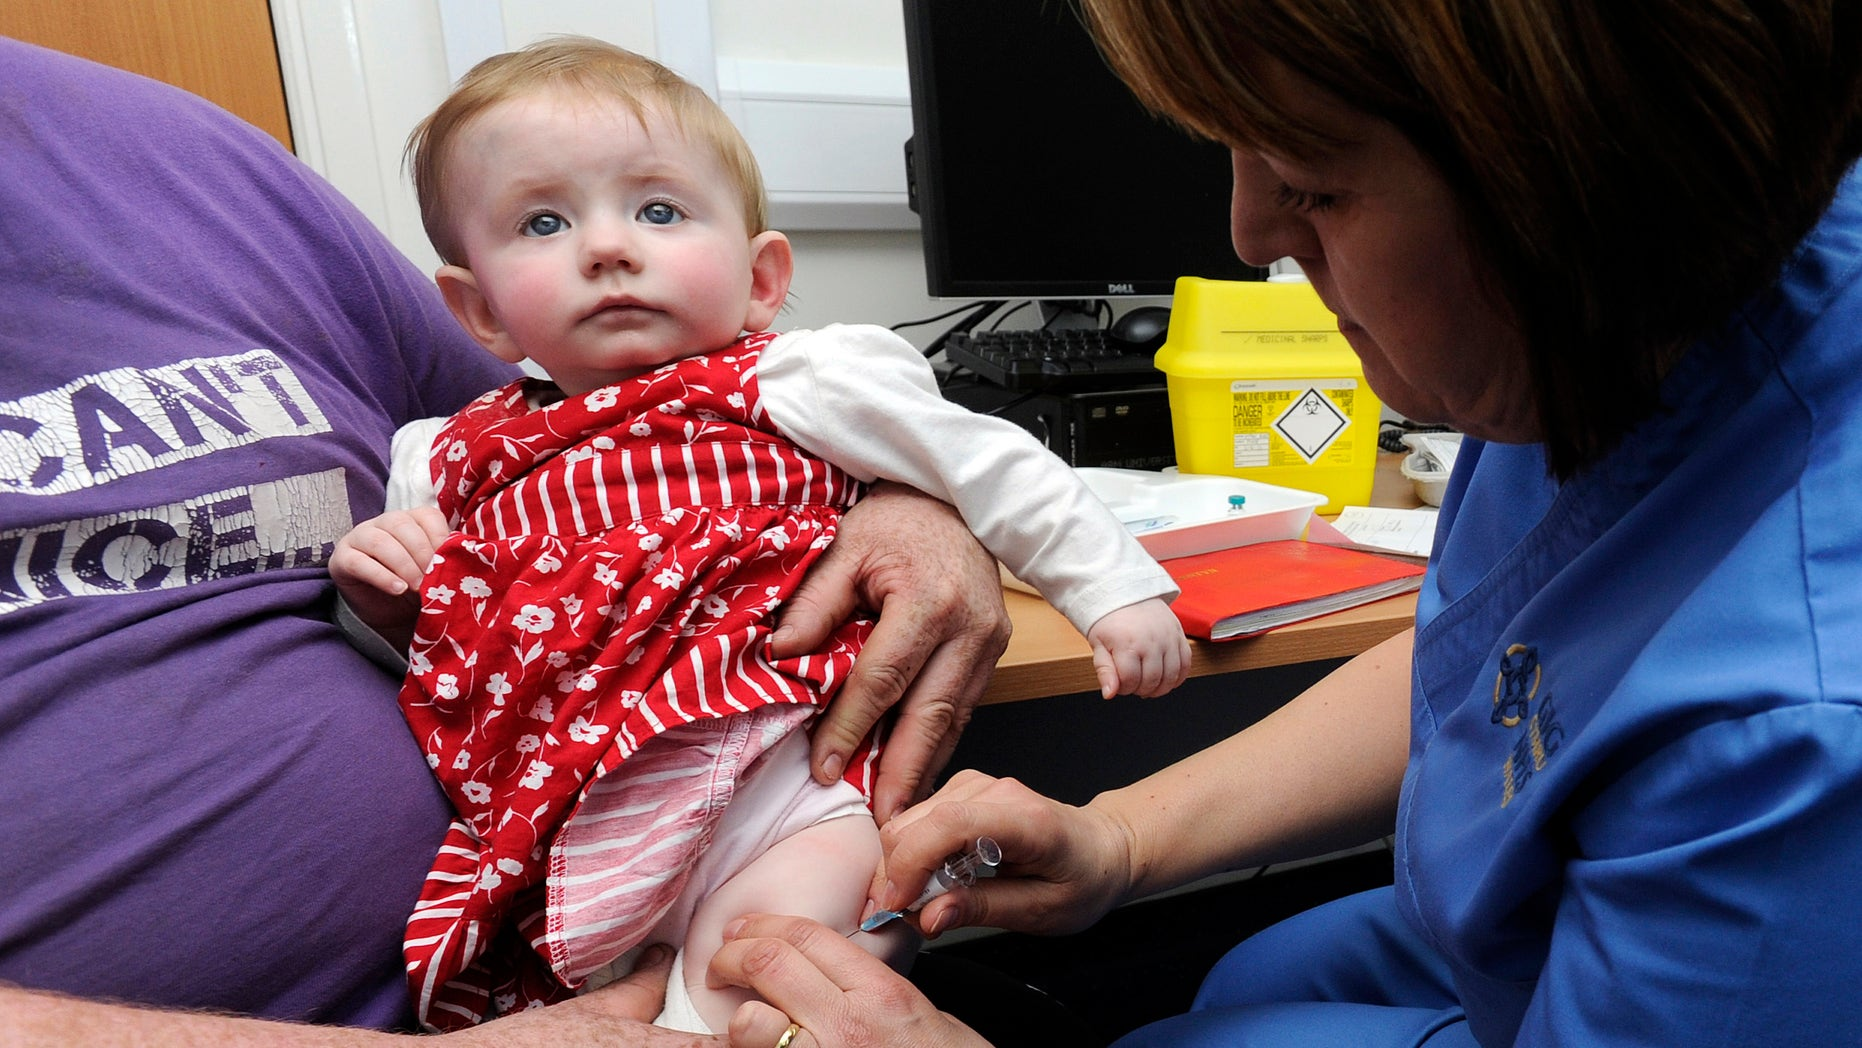 A 10-month-old receives an MMR injection. (REUTERS/Rebecca Naden)